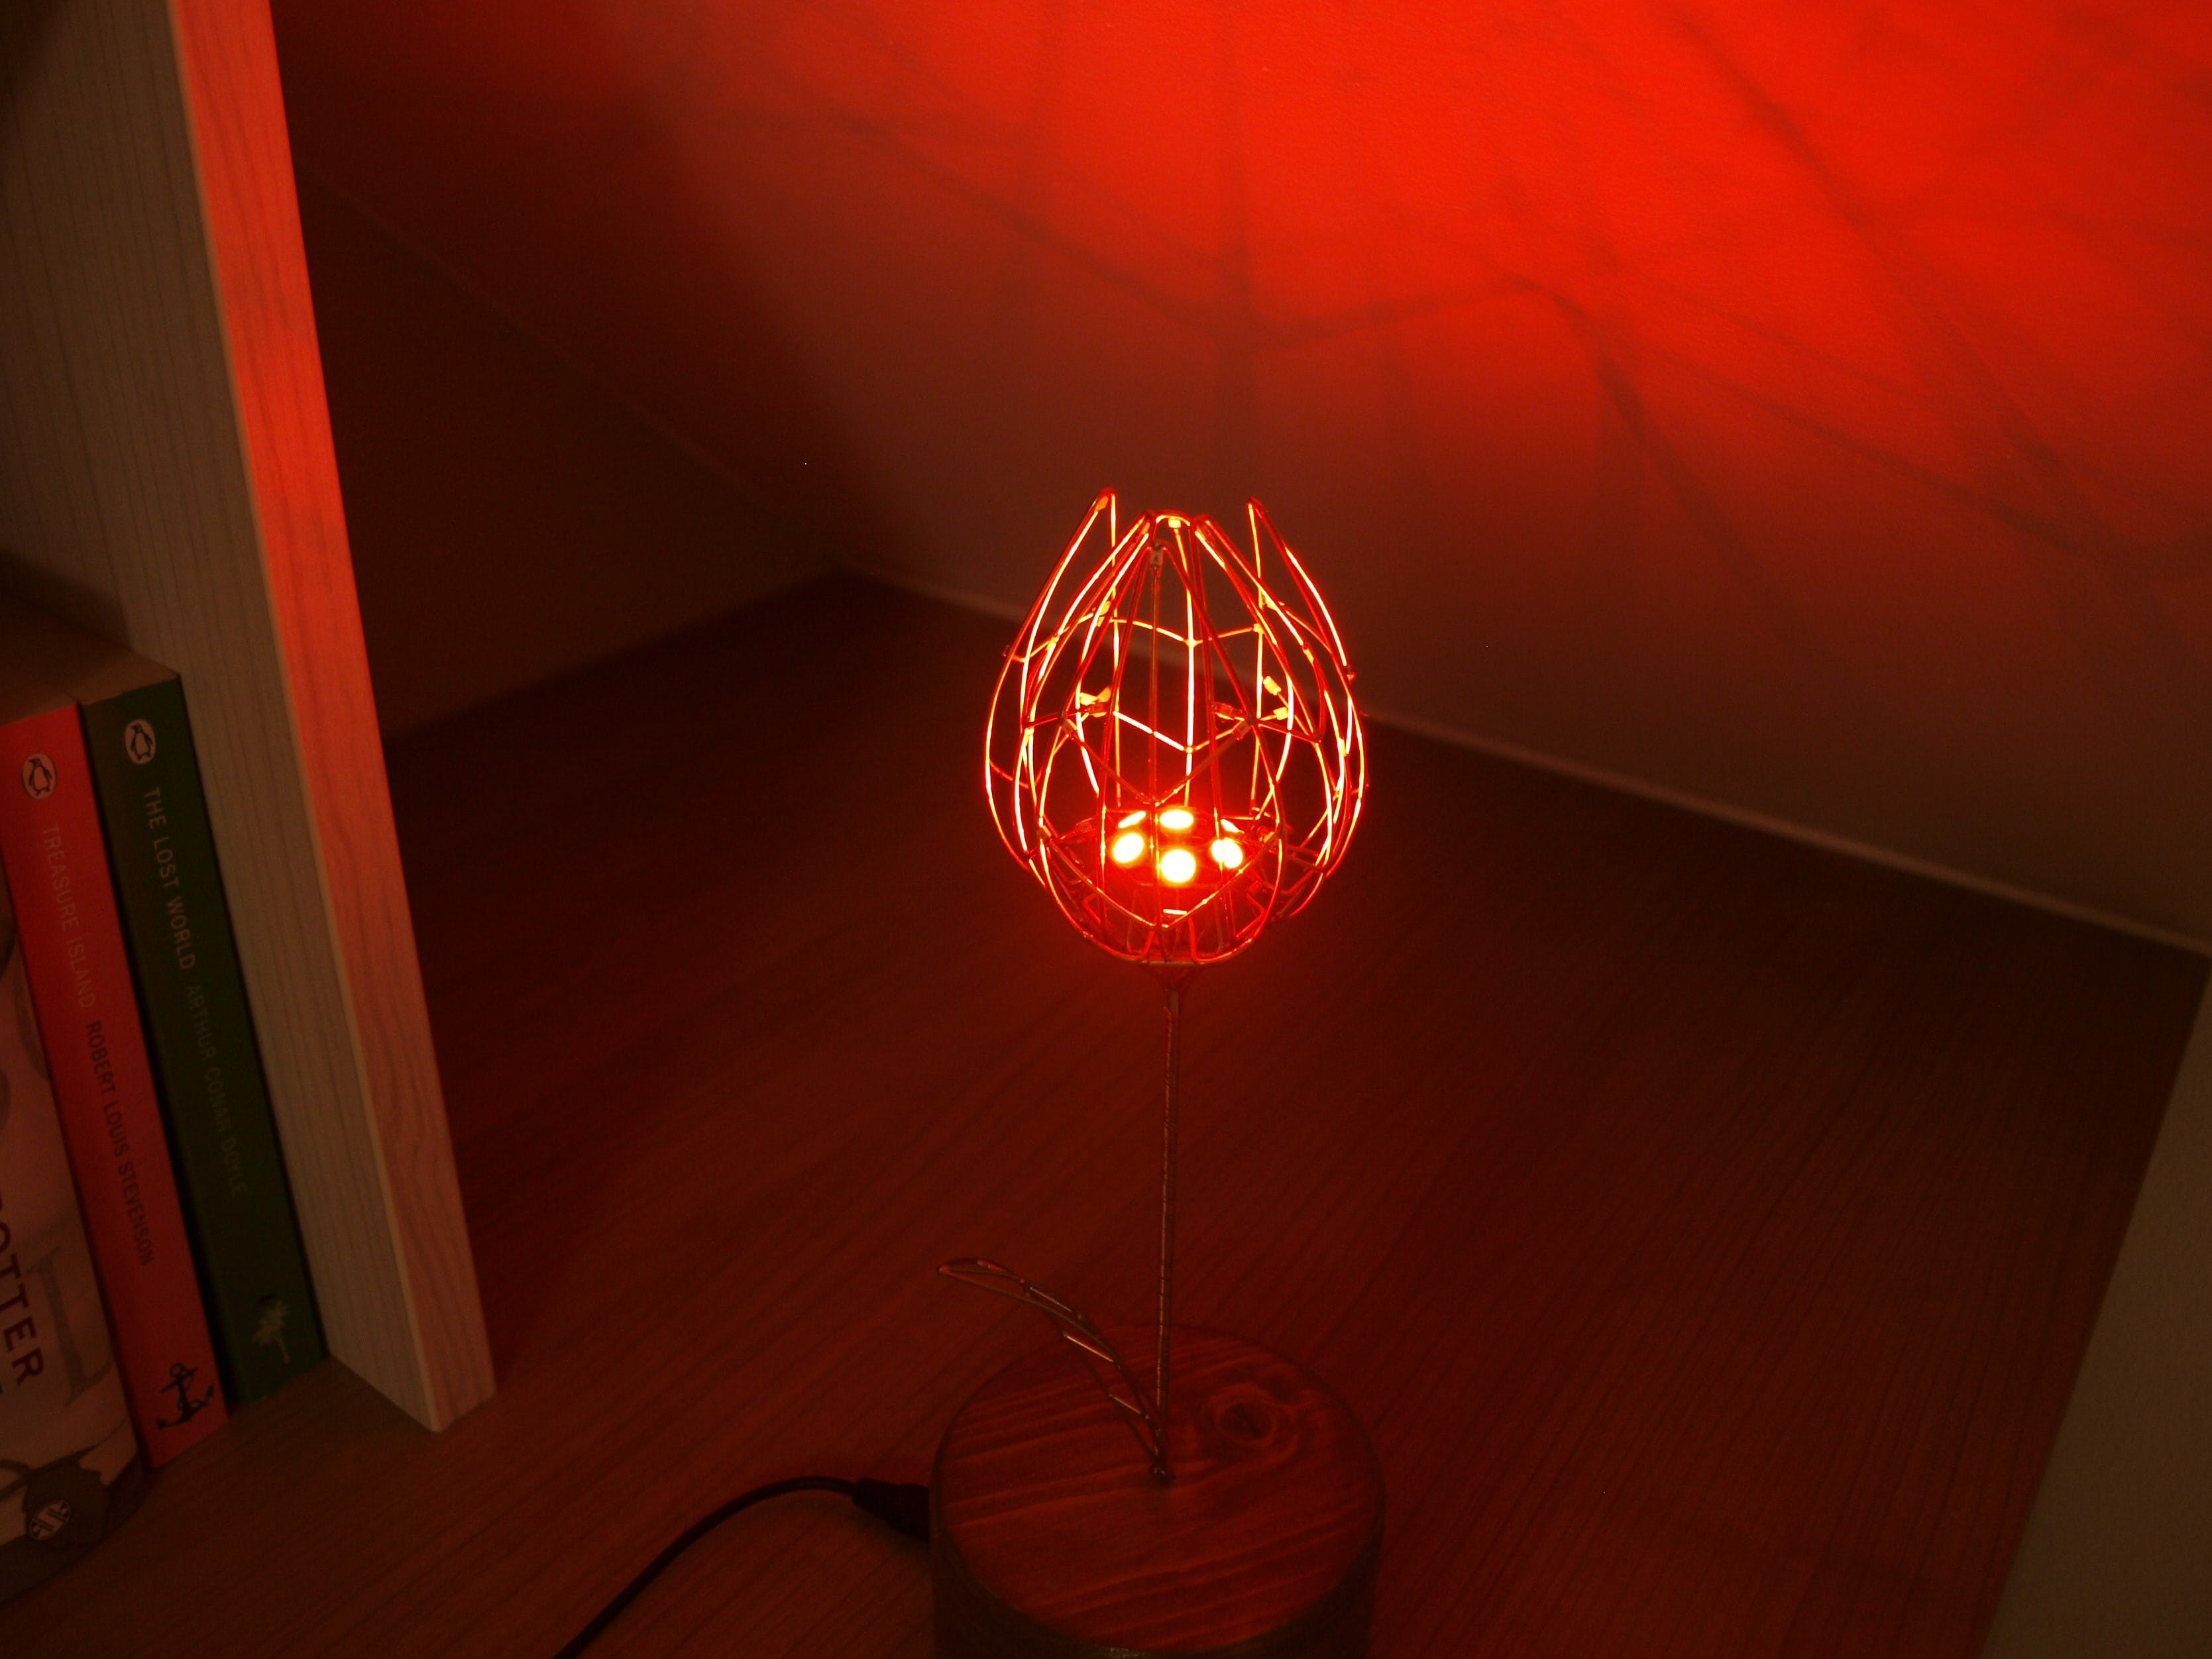 It is so great as an ambient lamp